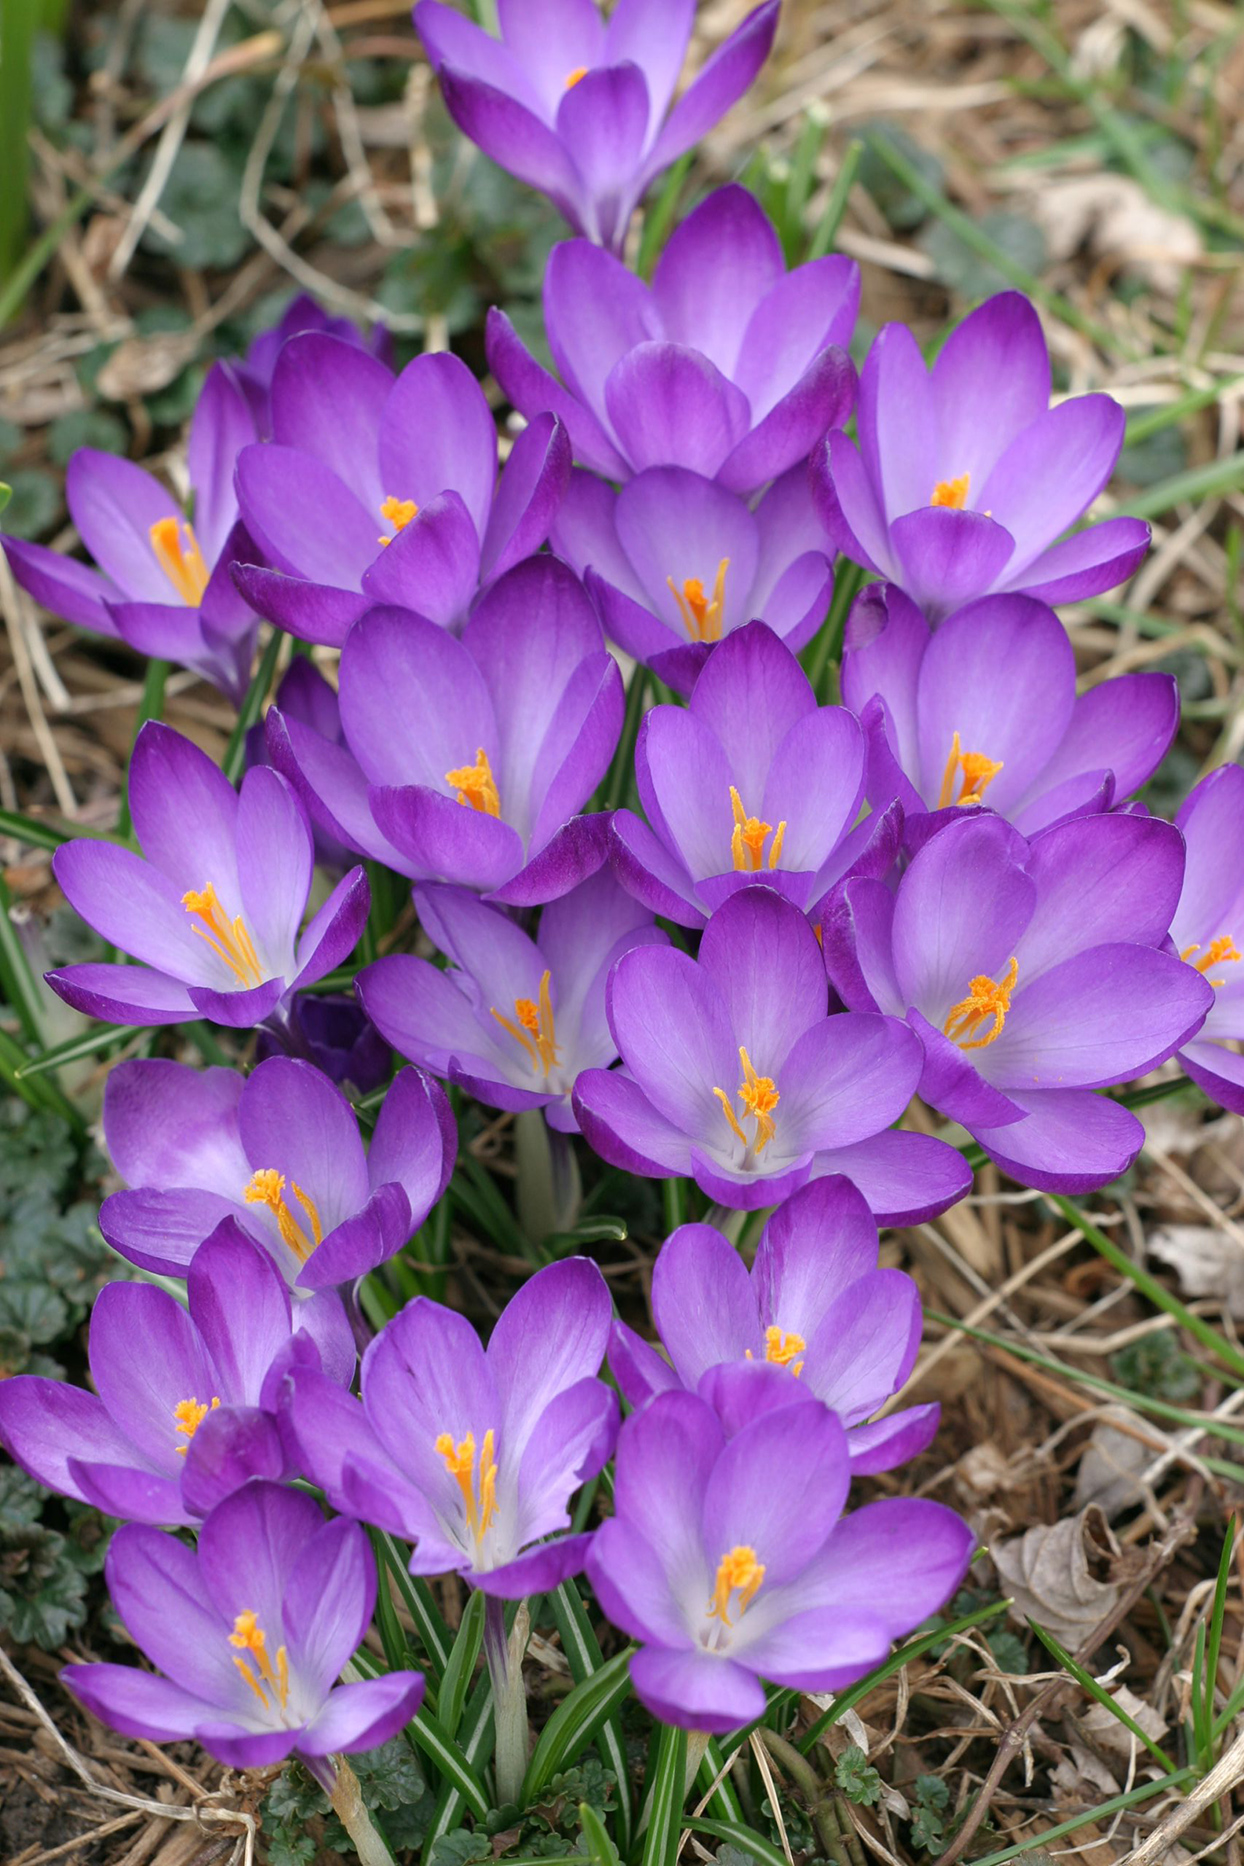 purple crocuses in garden